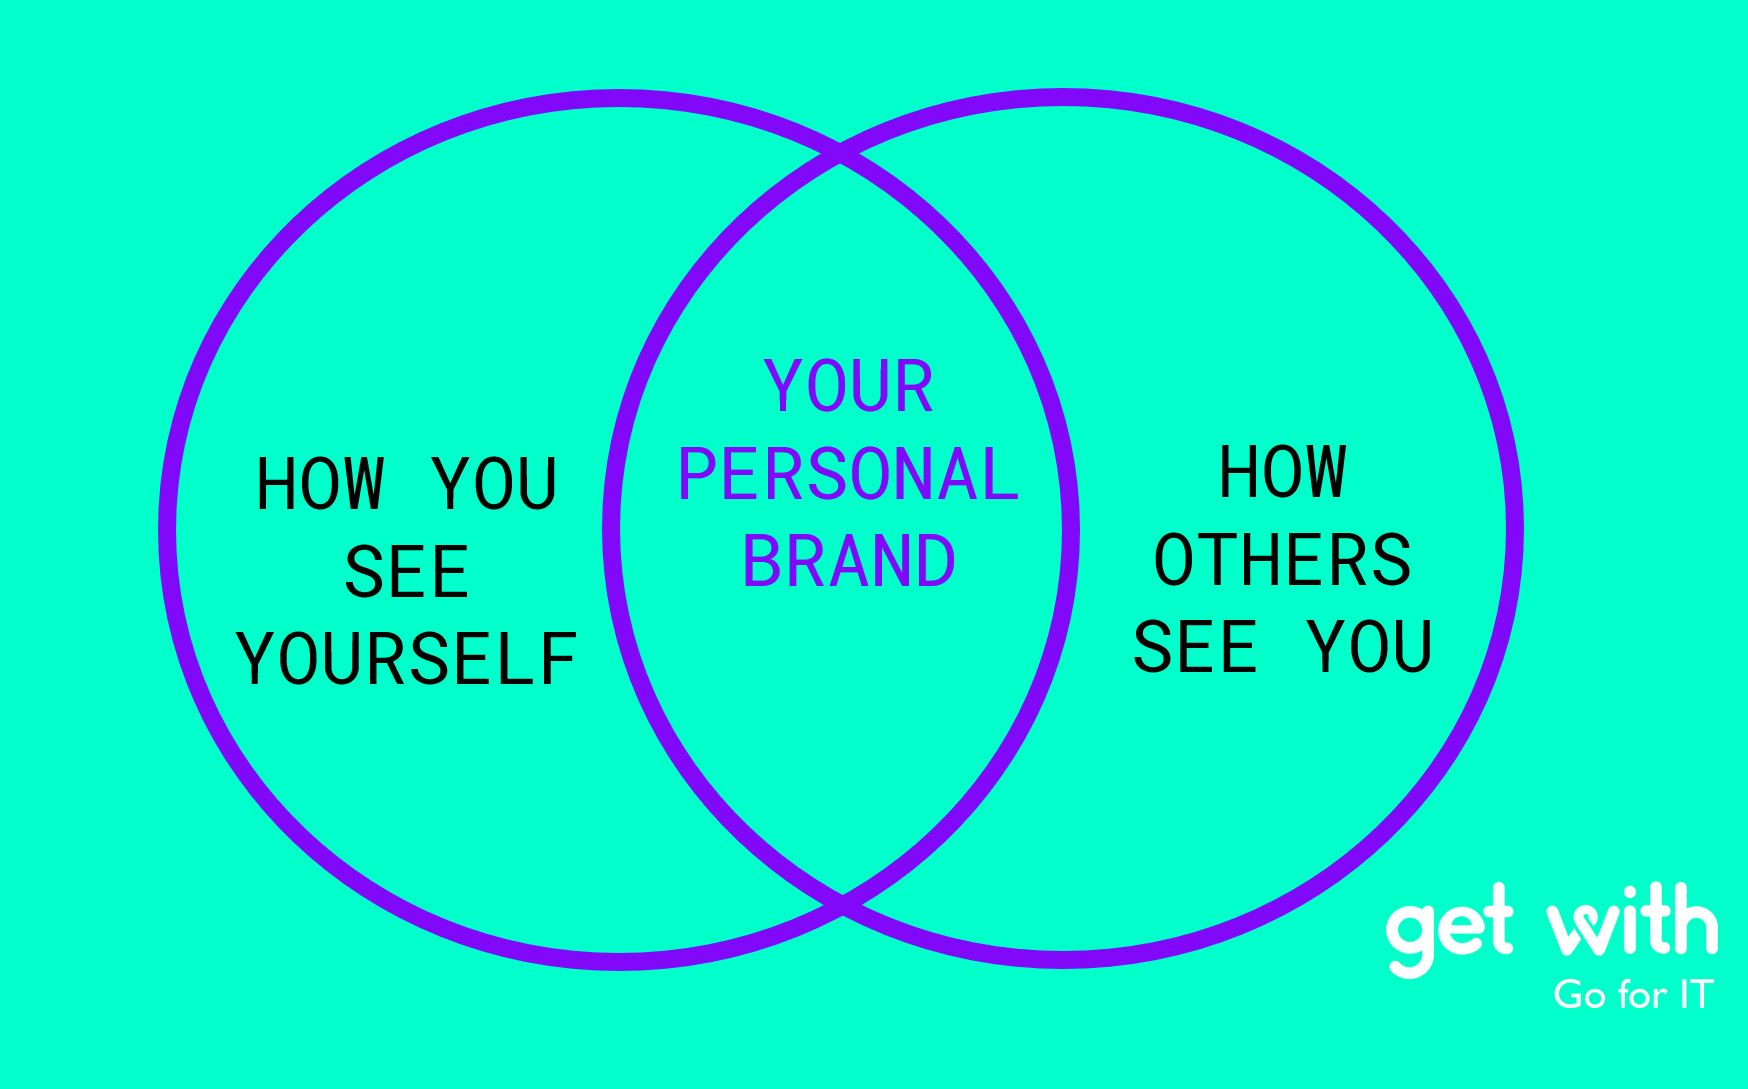 your-personal-brand